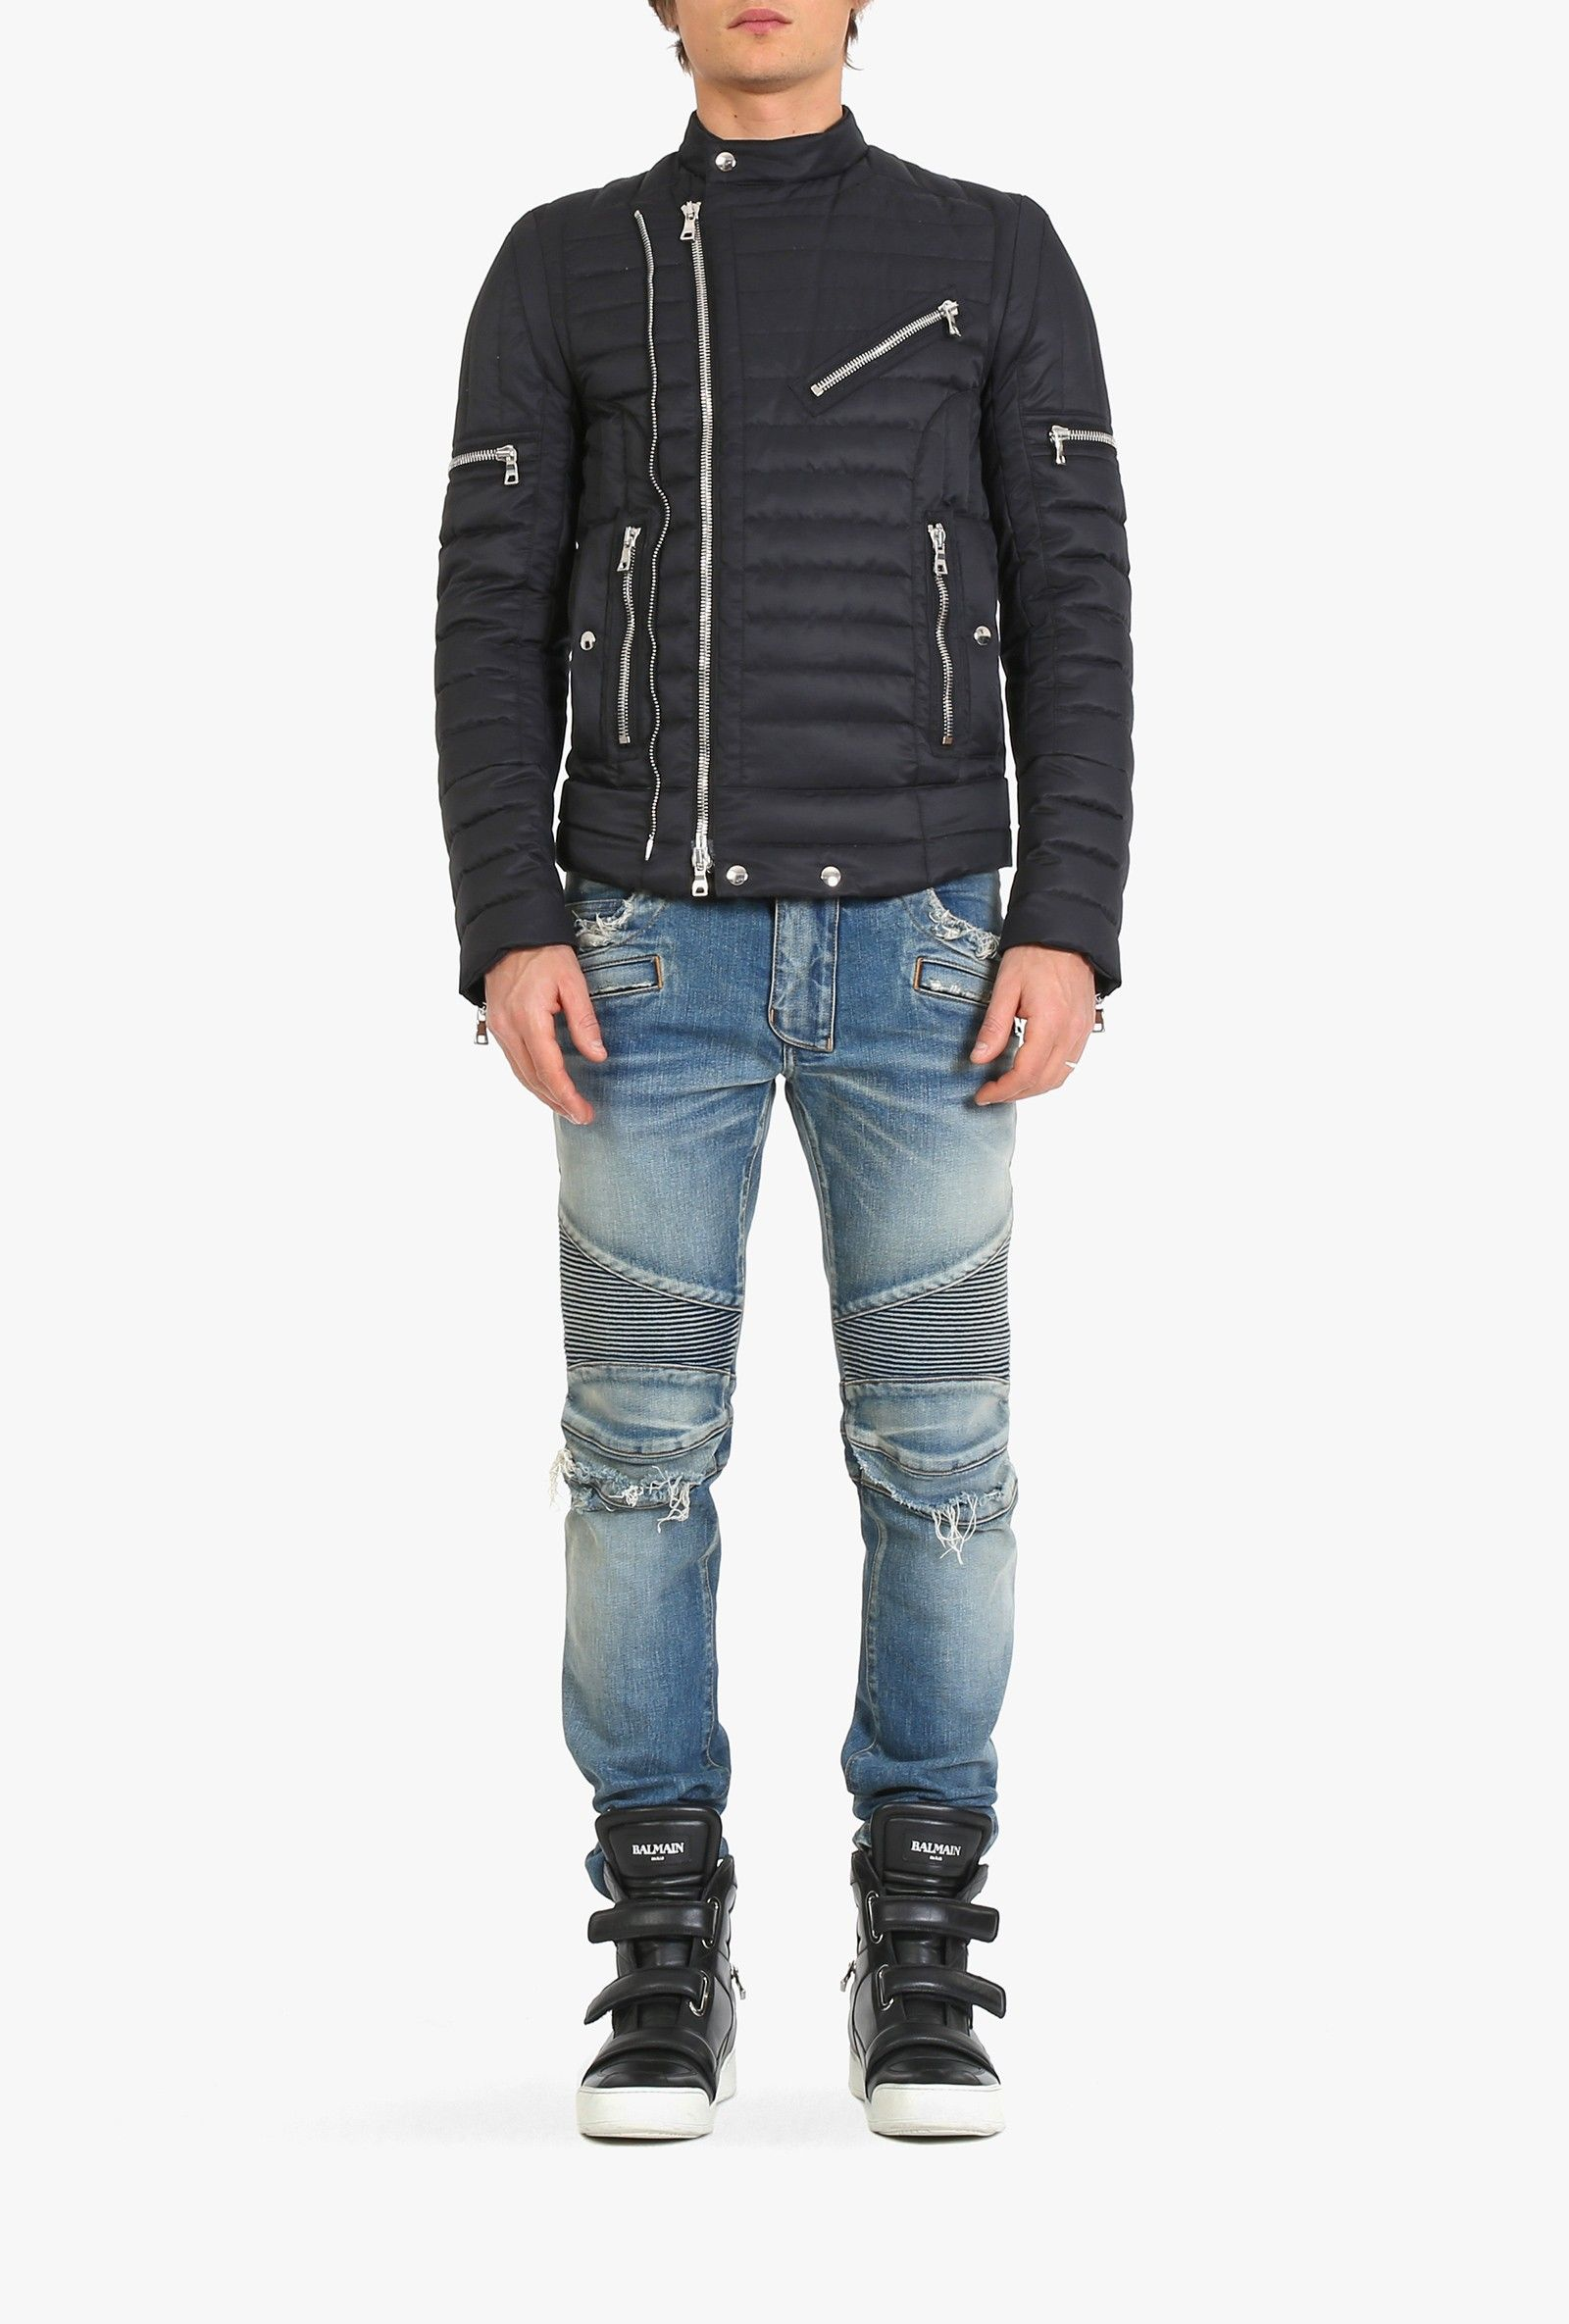 Balmain - Quilted down-filled jacket - Men's down jackets | M ... : quilted down jacket mens - Adamdwight.com